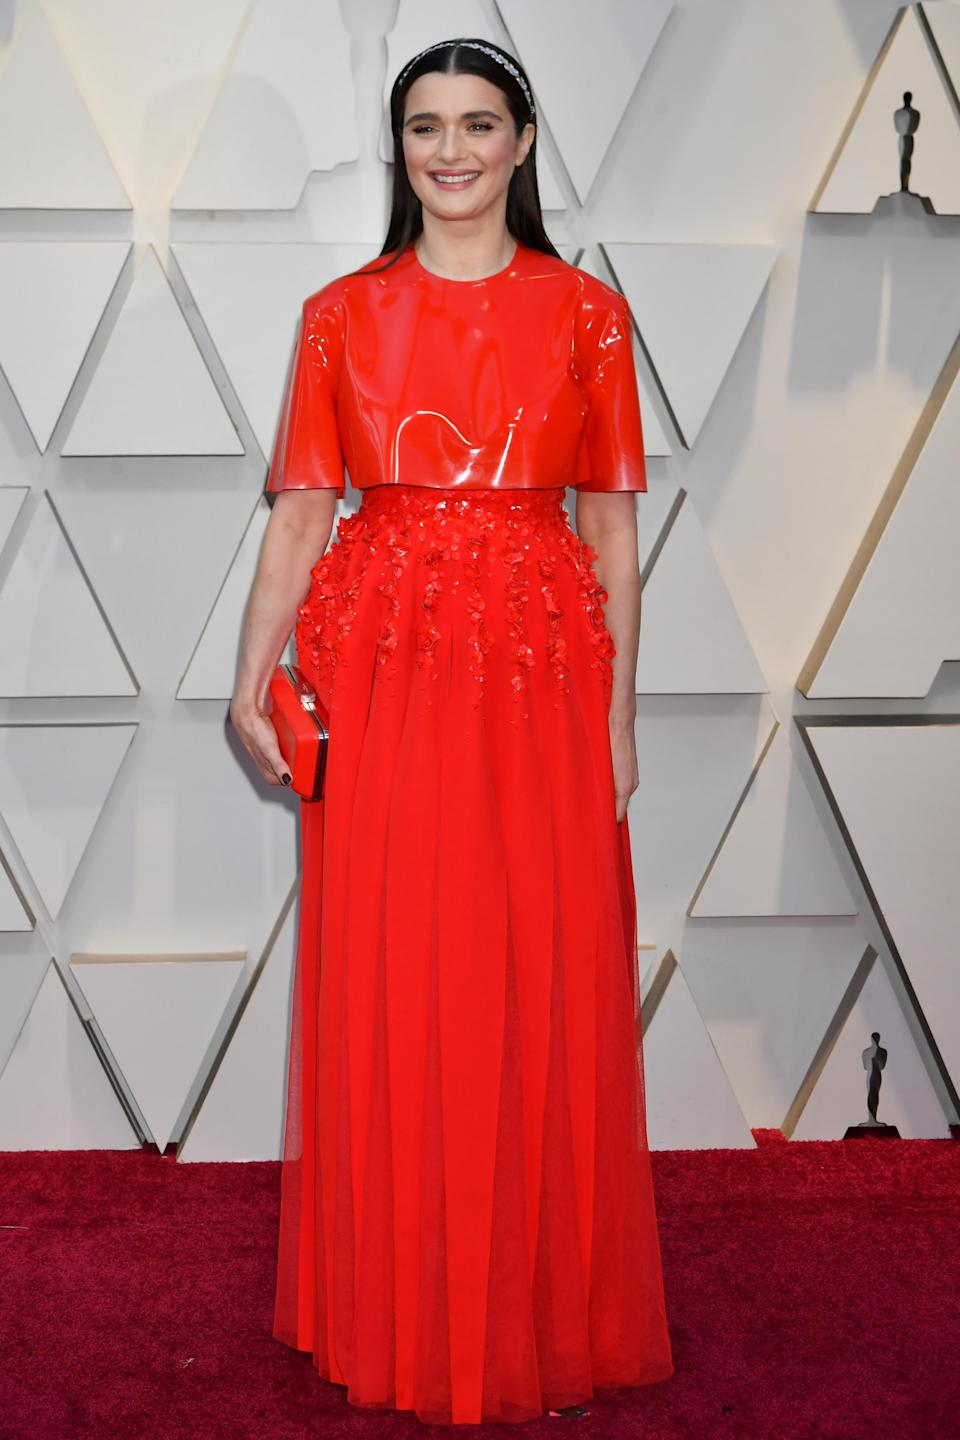 """<p>""""The Favourite"""" star and nominee for Best Supporting Actress wore a bright red gown with delicate flower detailing by Givenchy. (Image via Getty Images) </p>"""